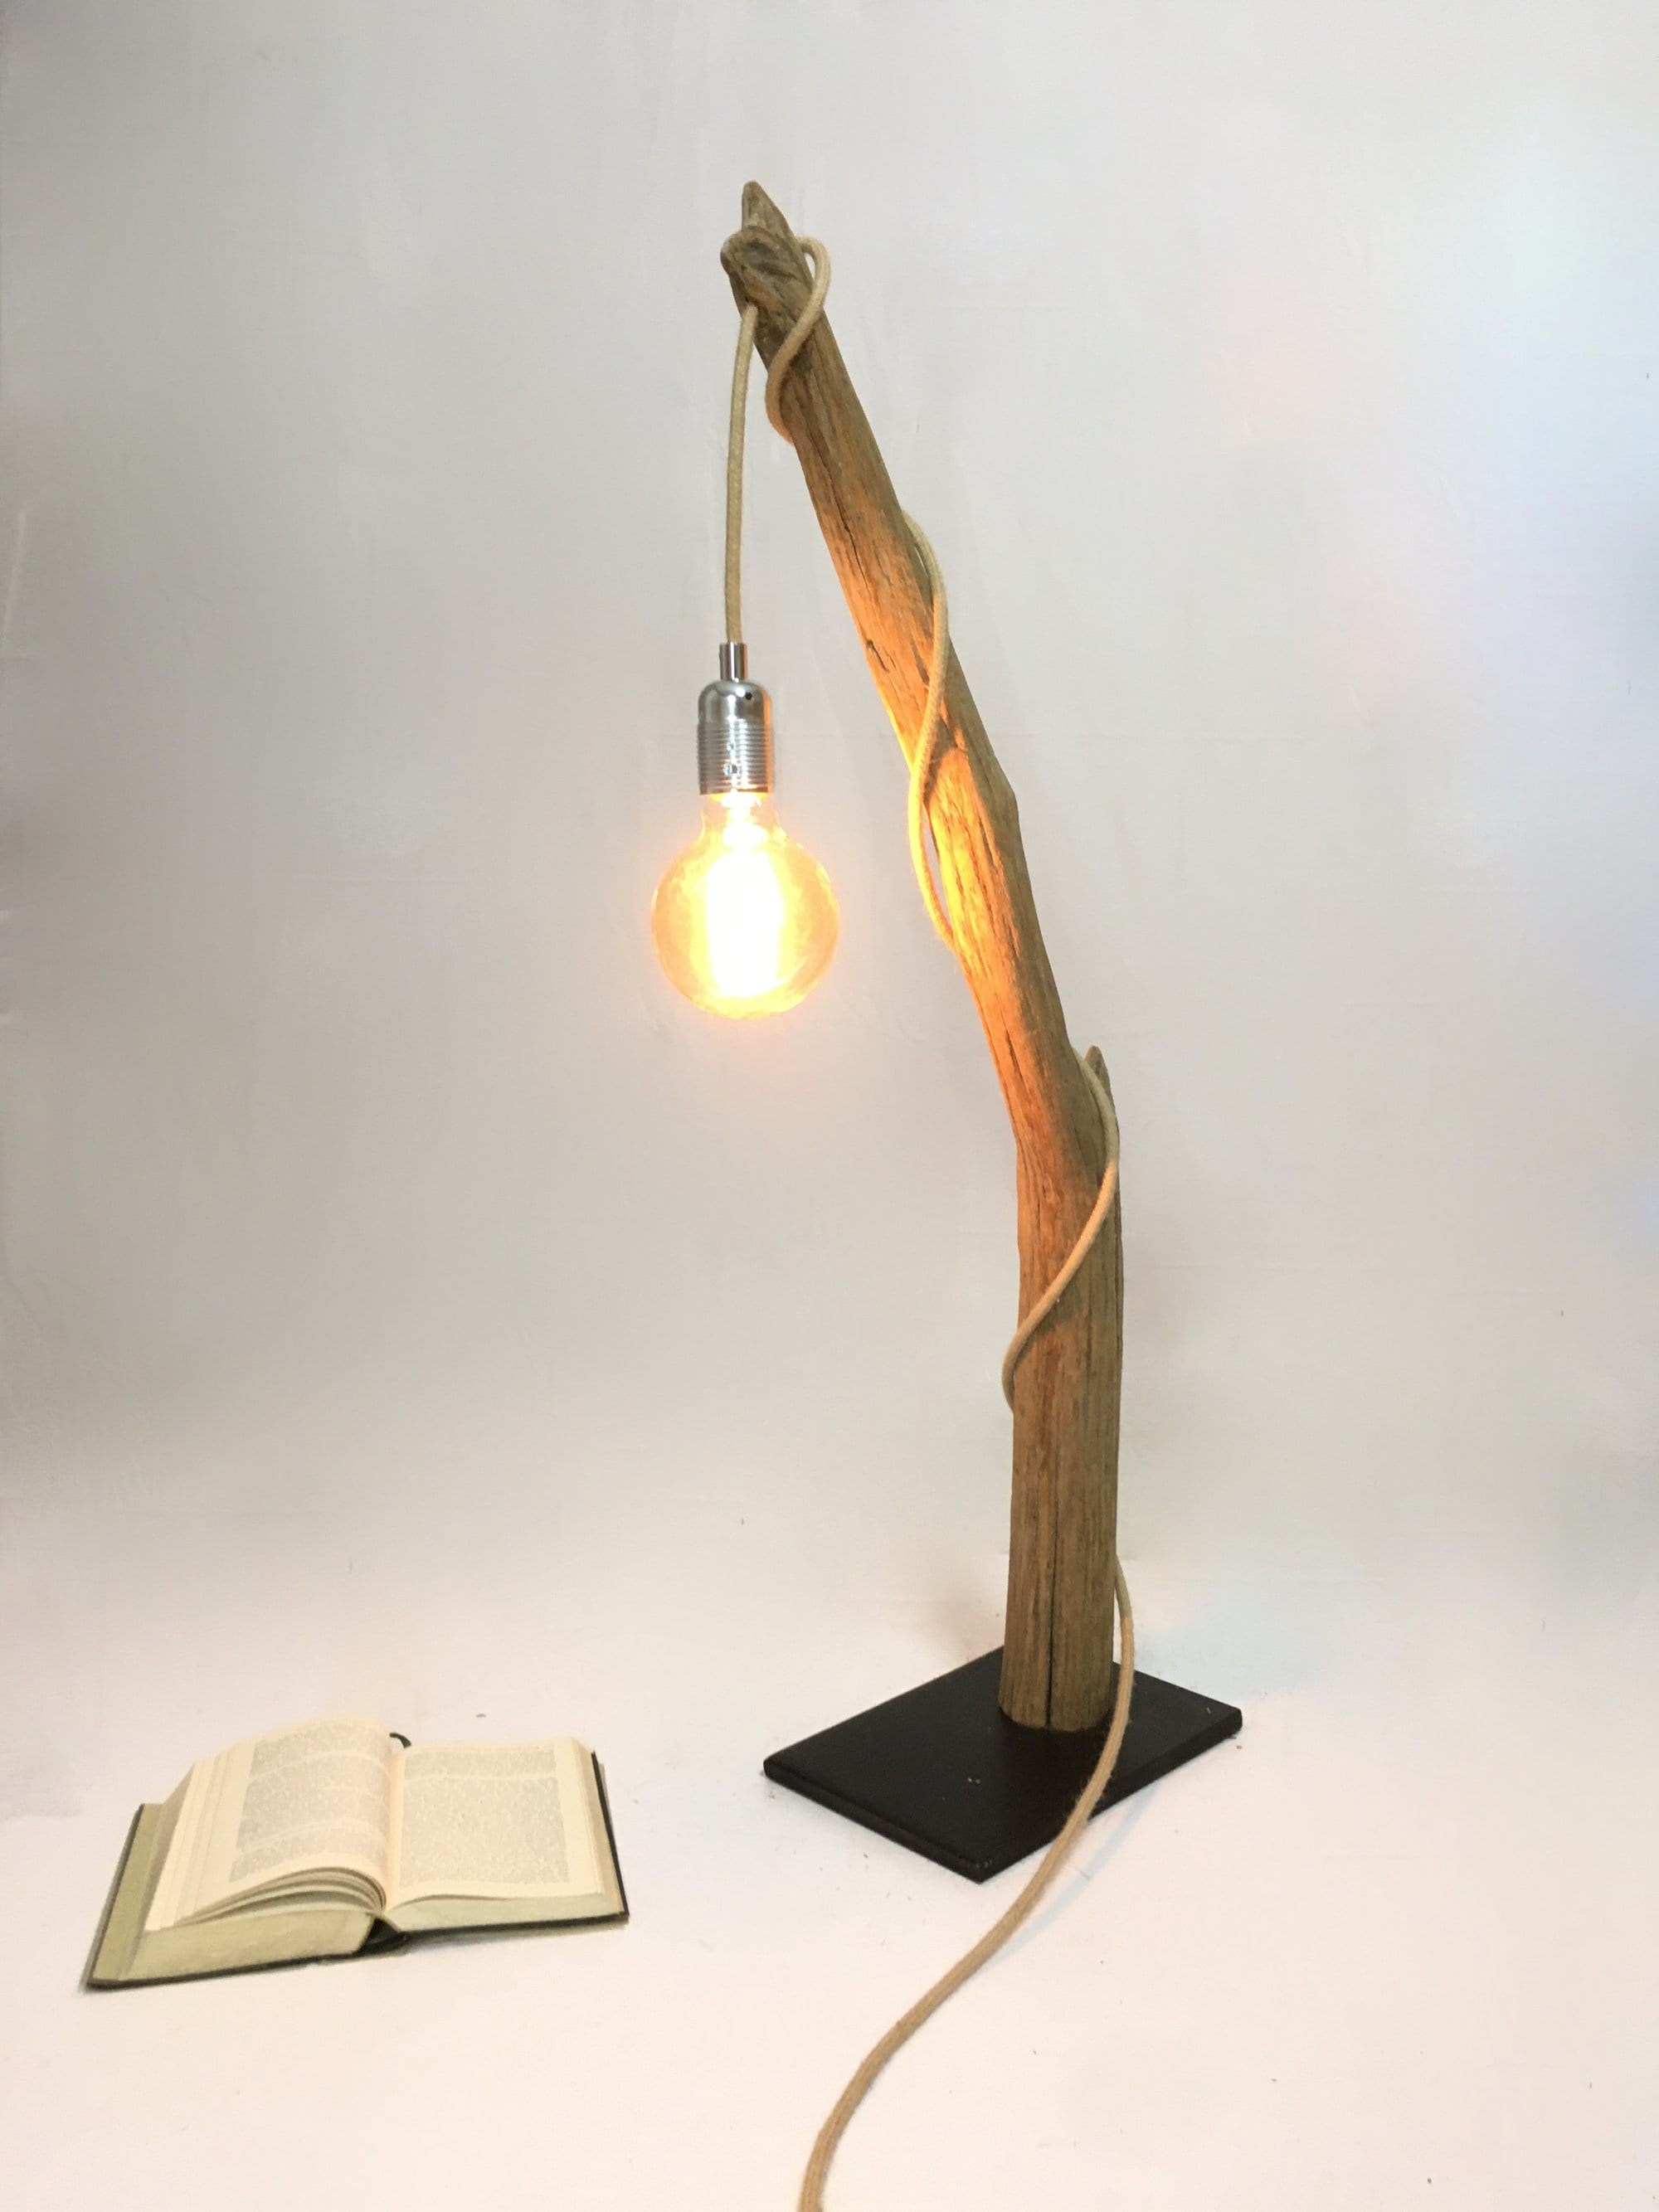 Driftwood Table Lamp Rope Cable And Edison Bulb